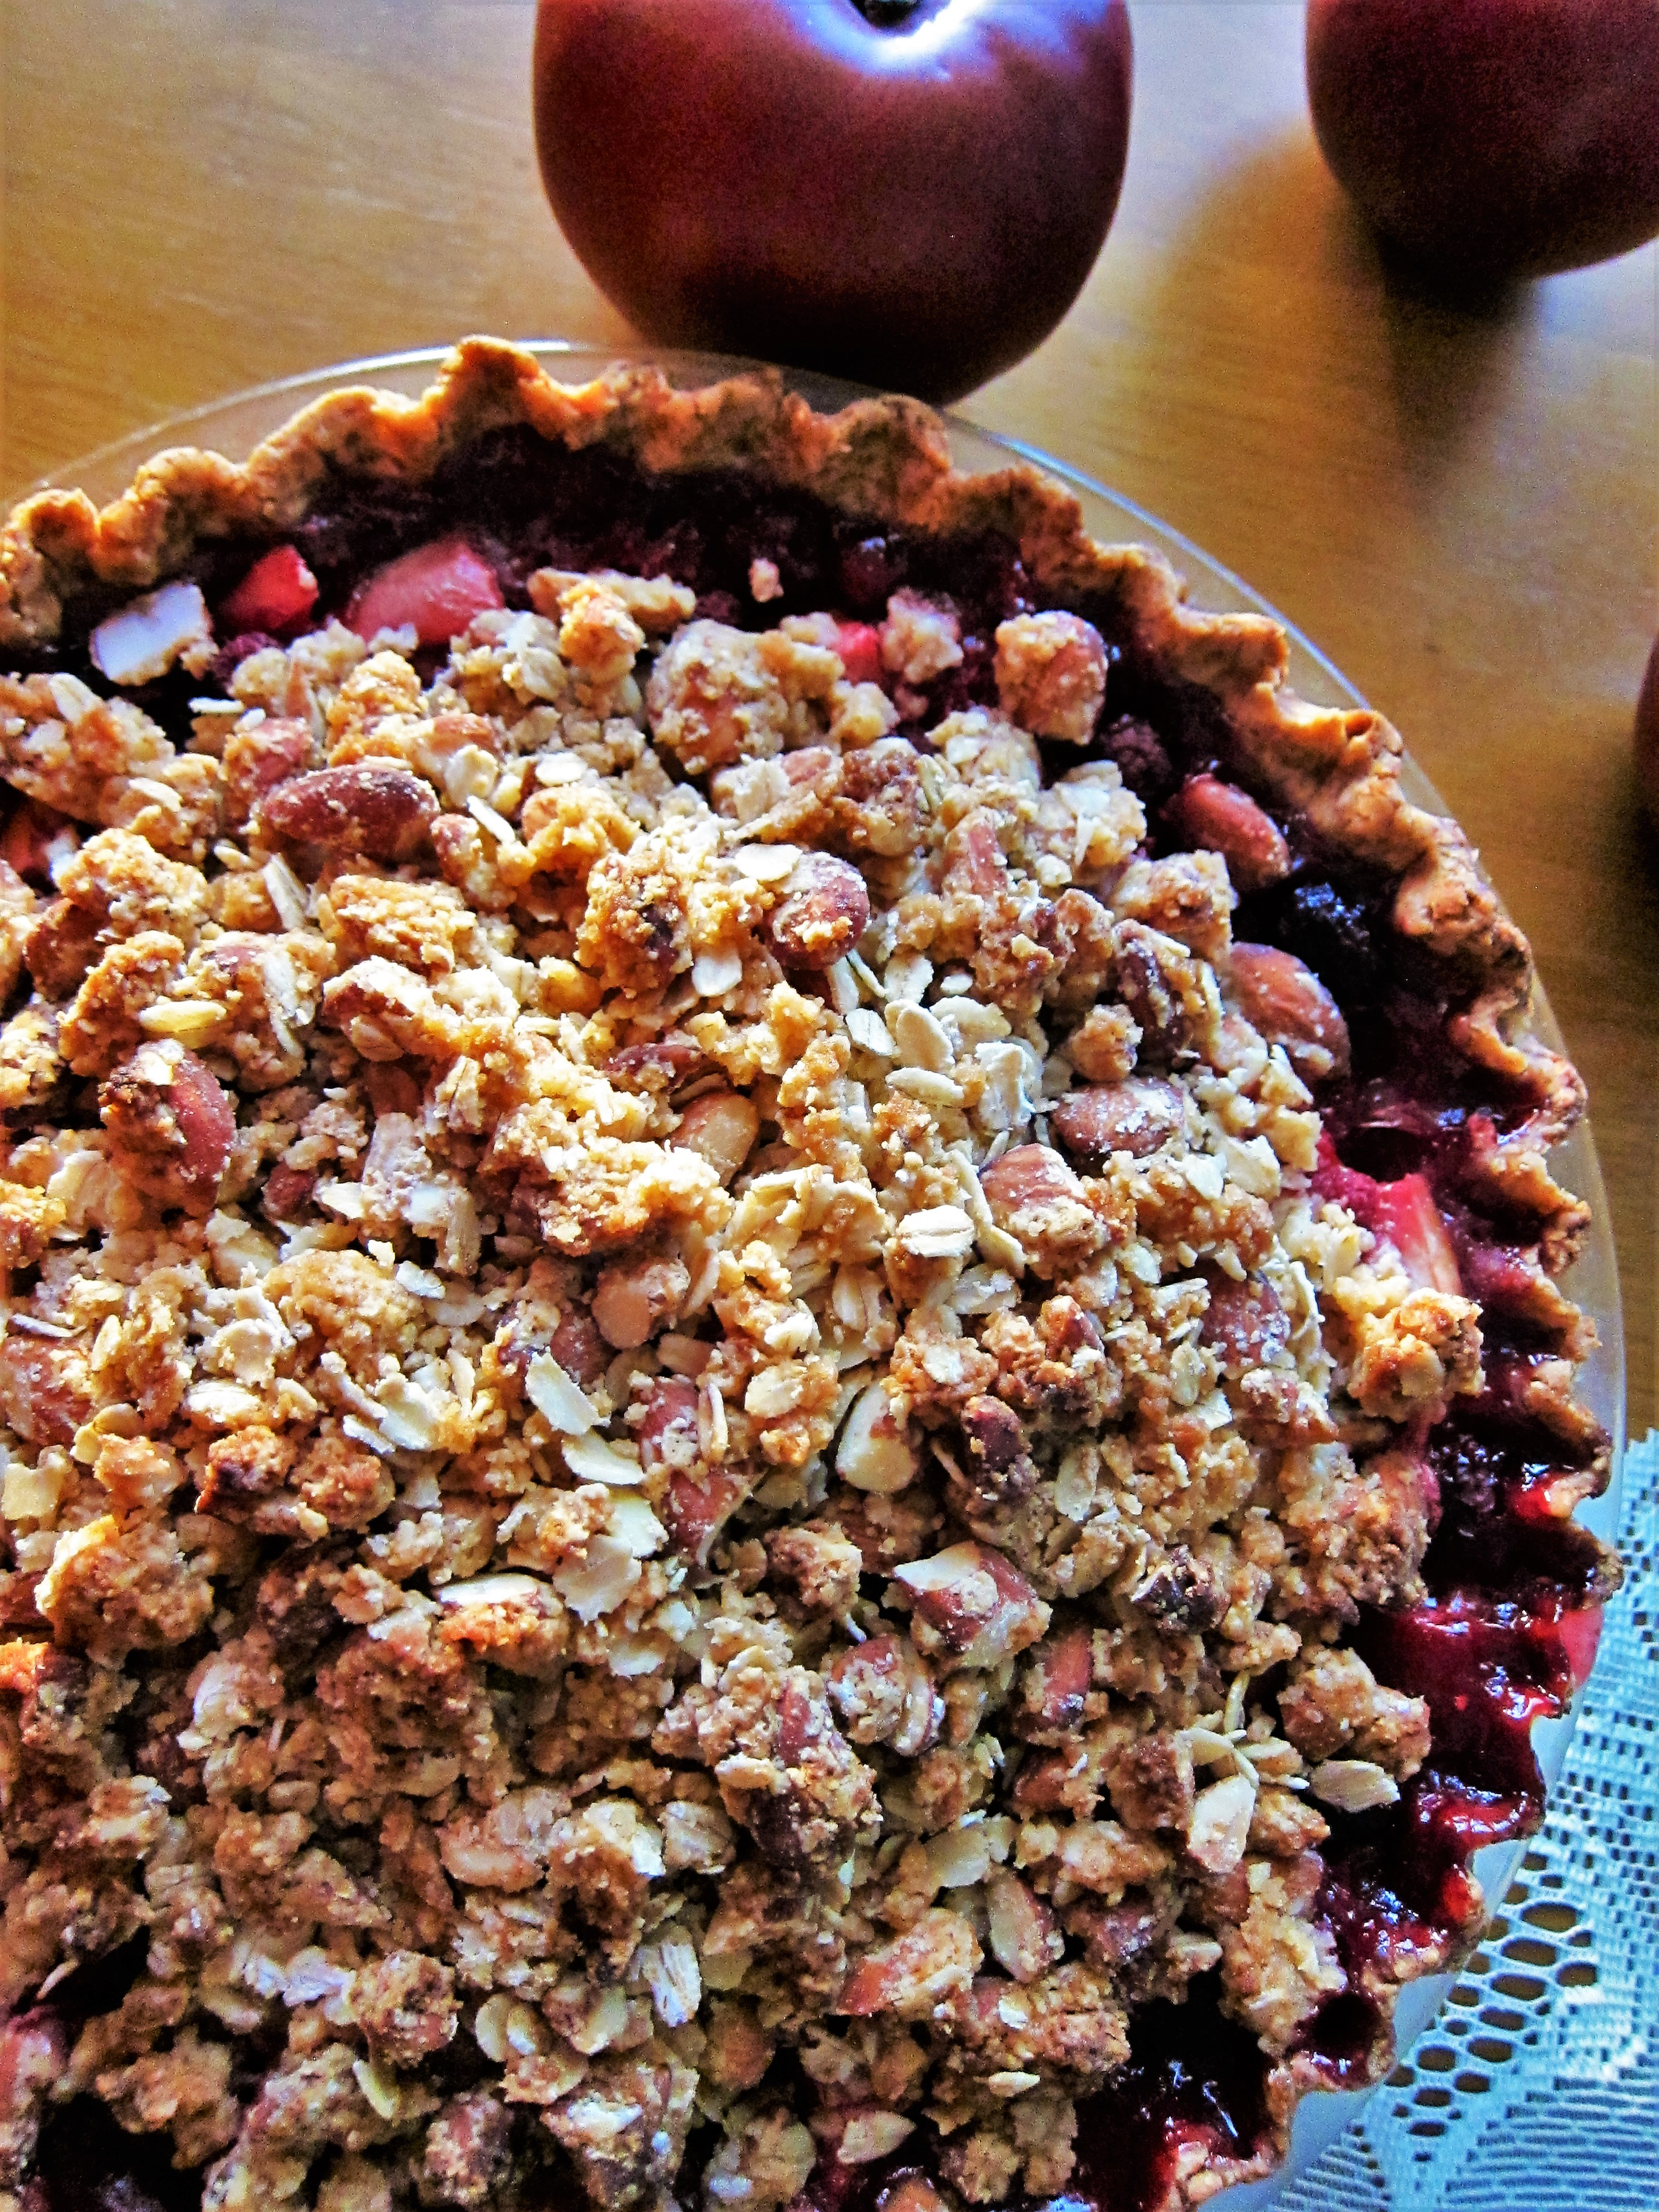 Vegan Apple Raspberry Pie with Almond Streusel Topping